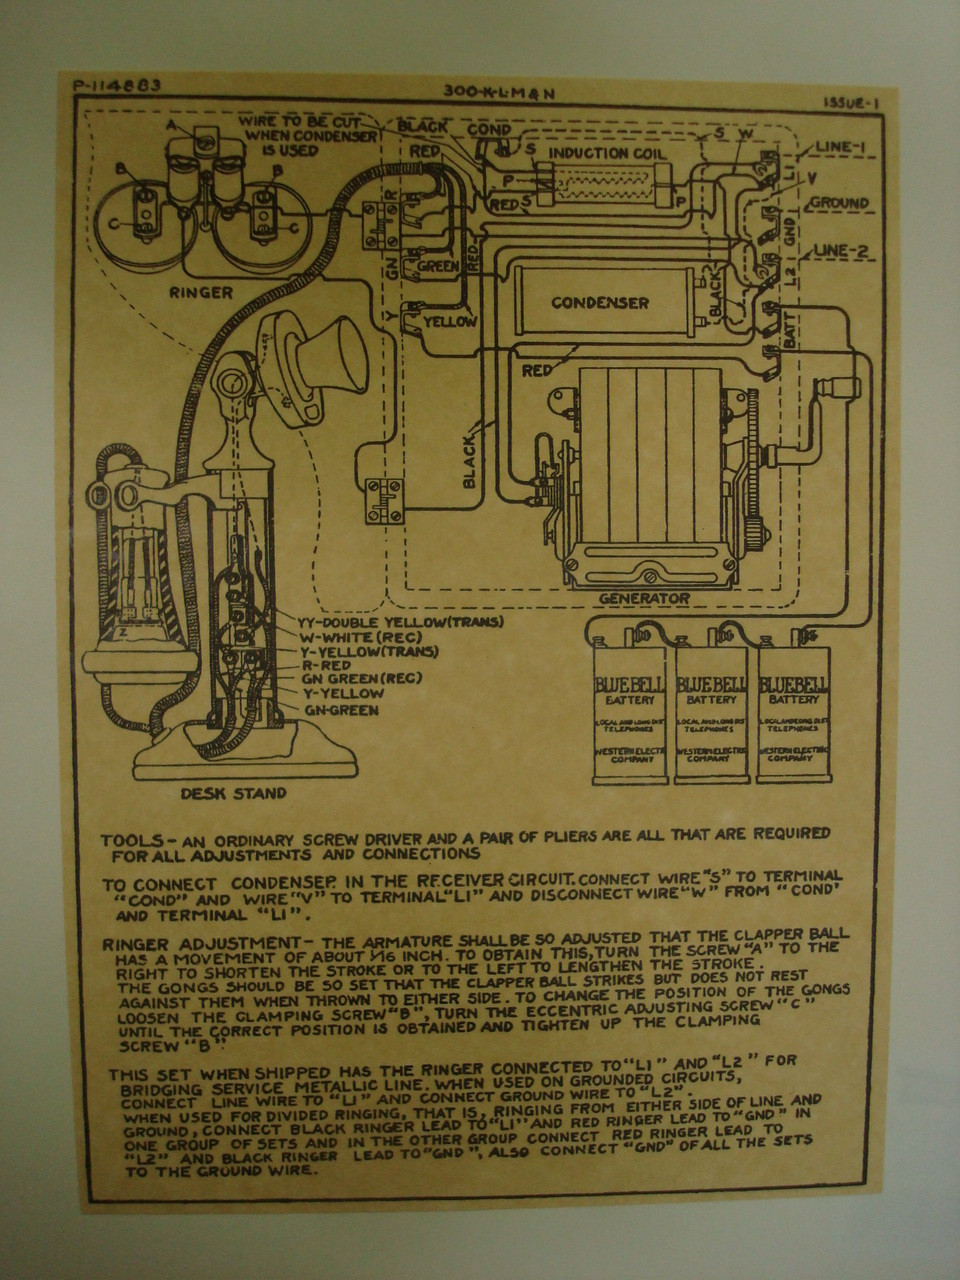 Antique Phone Wiring Diagram - Wiring Diagram Structure on